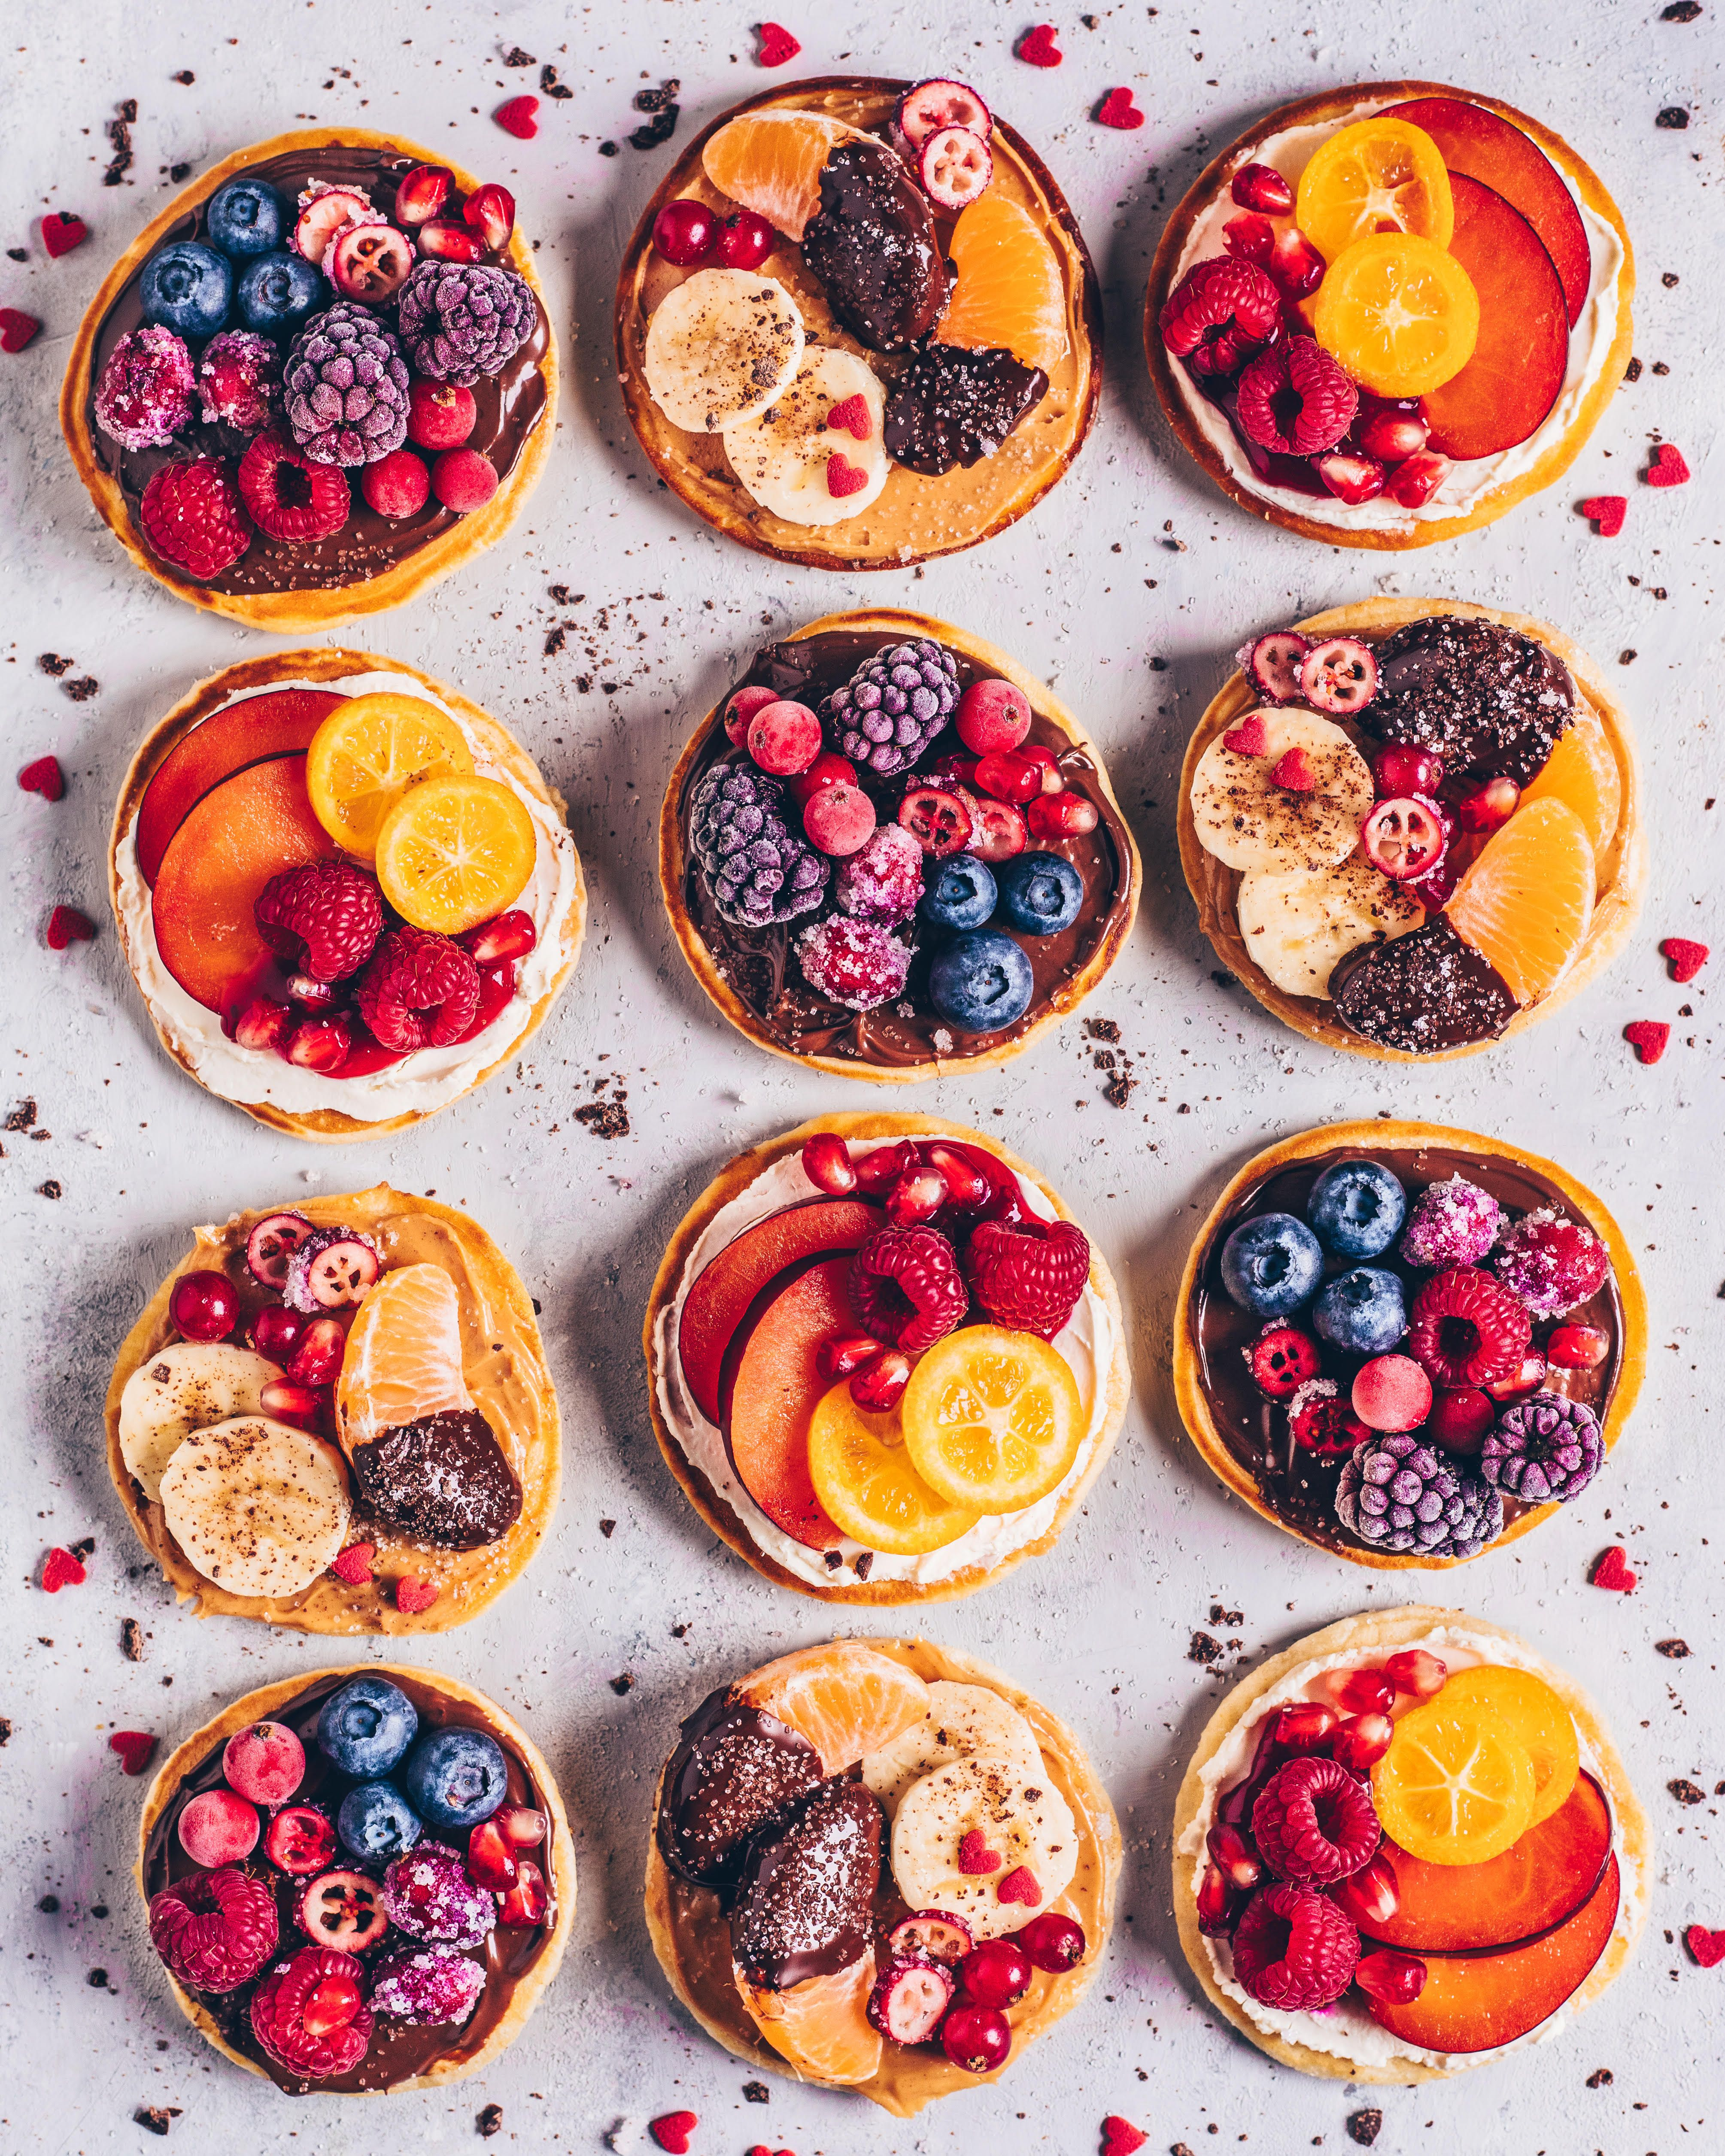 Easy Pancakes with Fresh Fruit